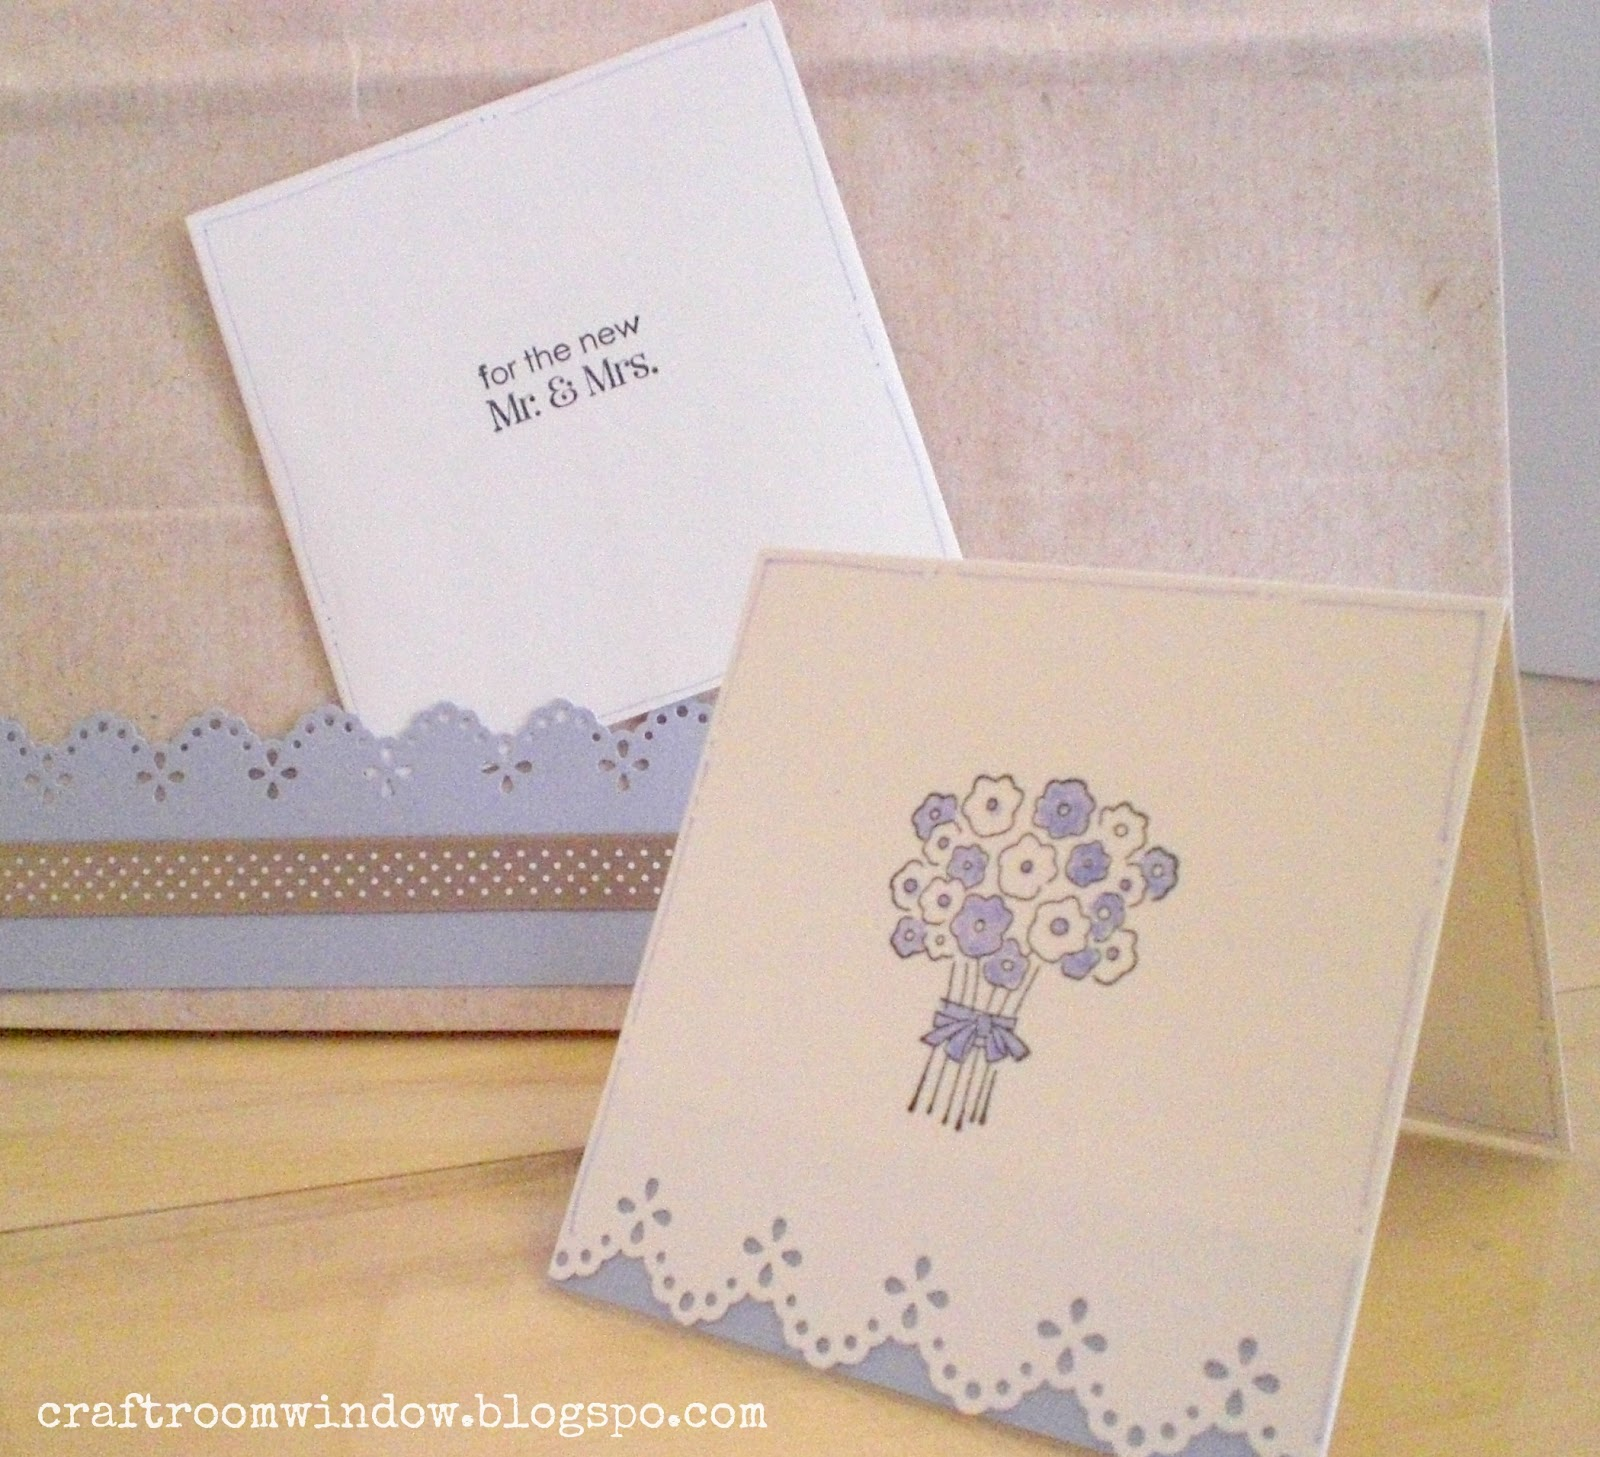 Wedding Gift Experiences : ... thoughts, creations and experiences...: 3x3 gift card for a wedding